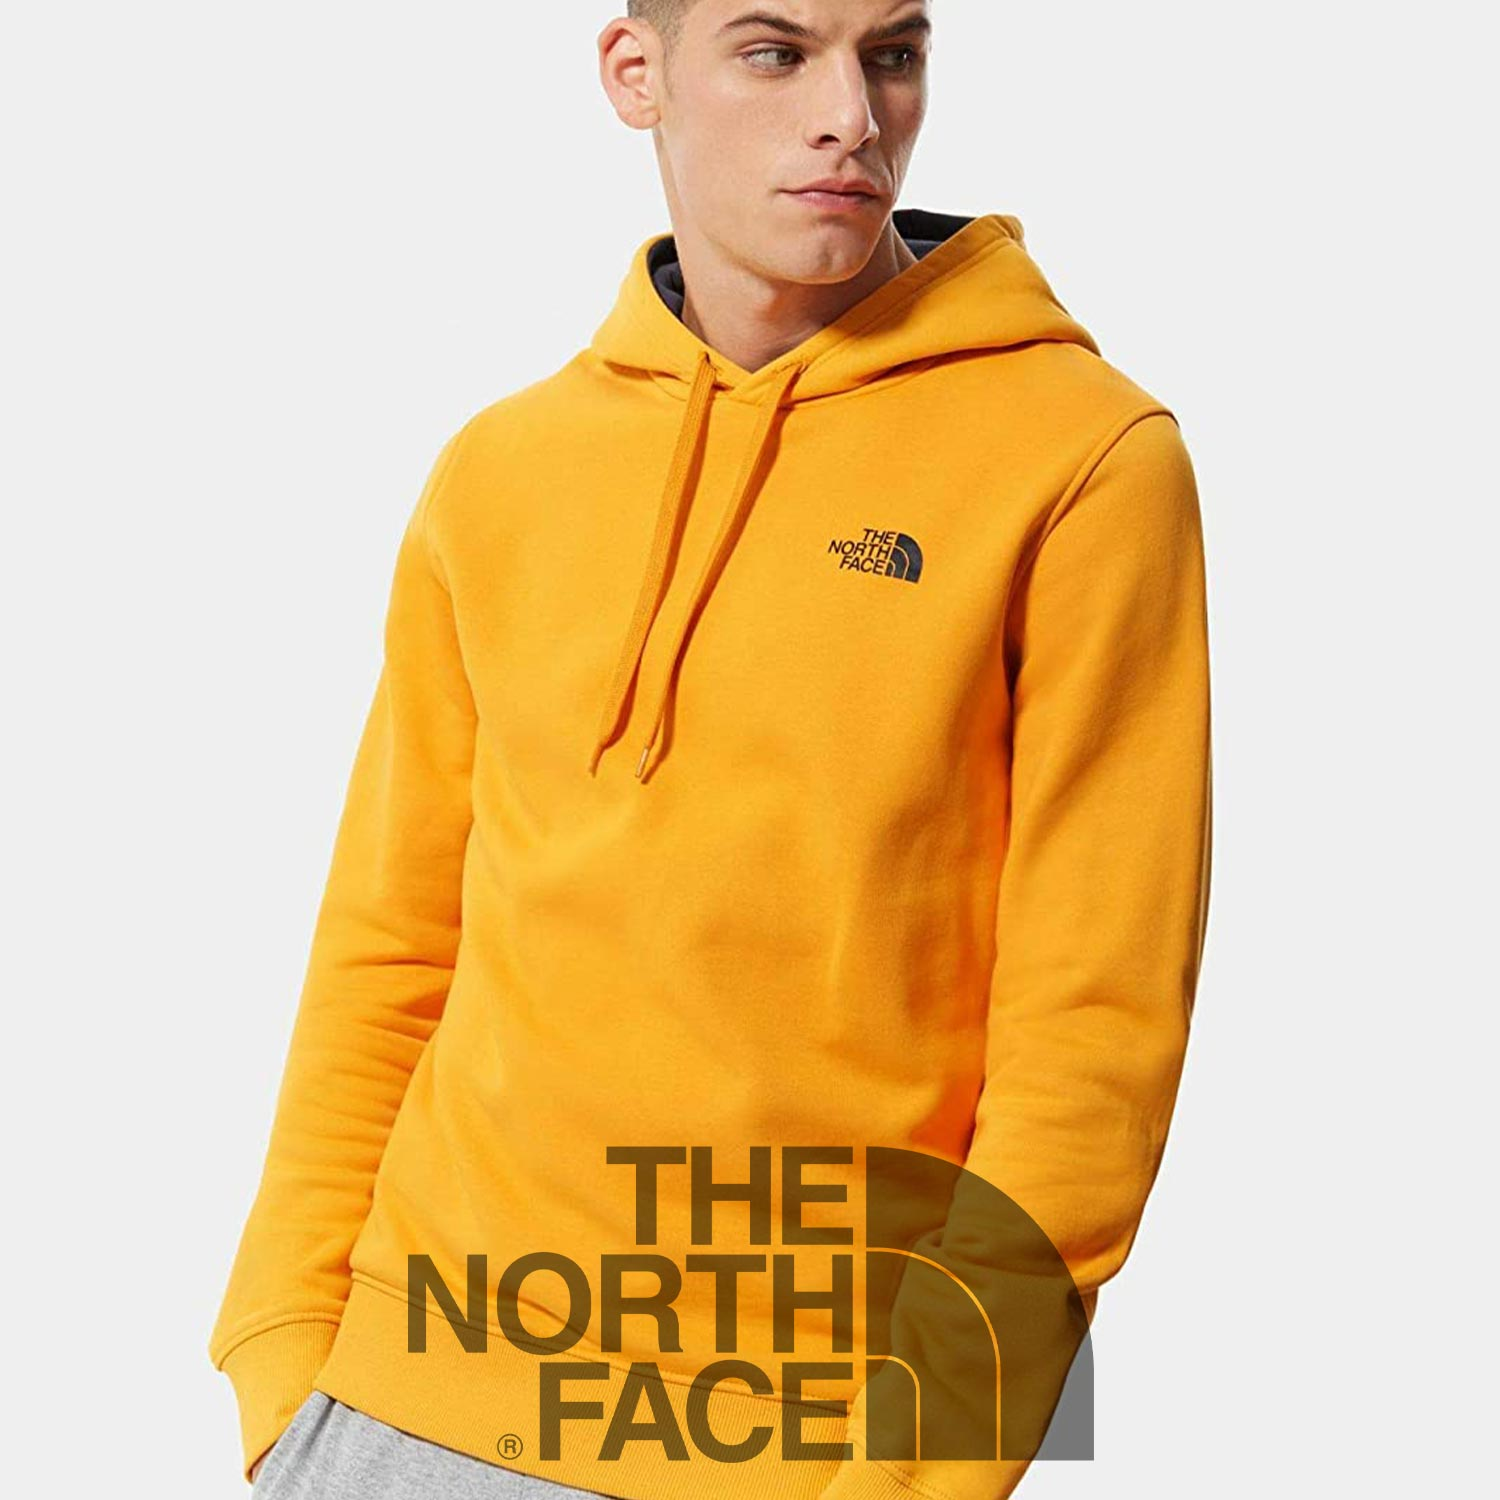 Abbigliamento sportswear felpe t-shirt The North Face 2021